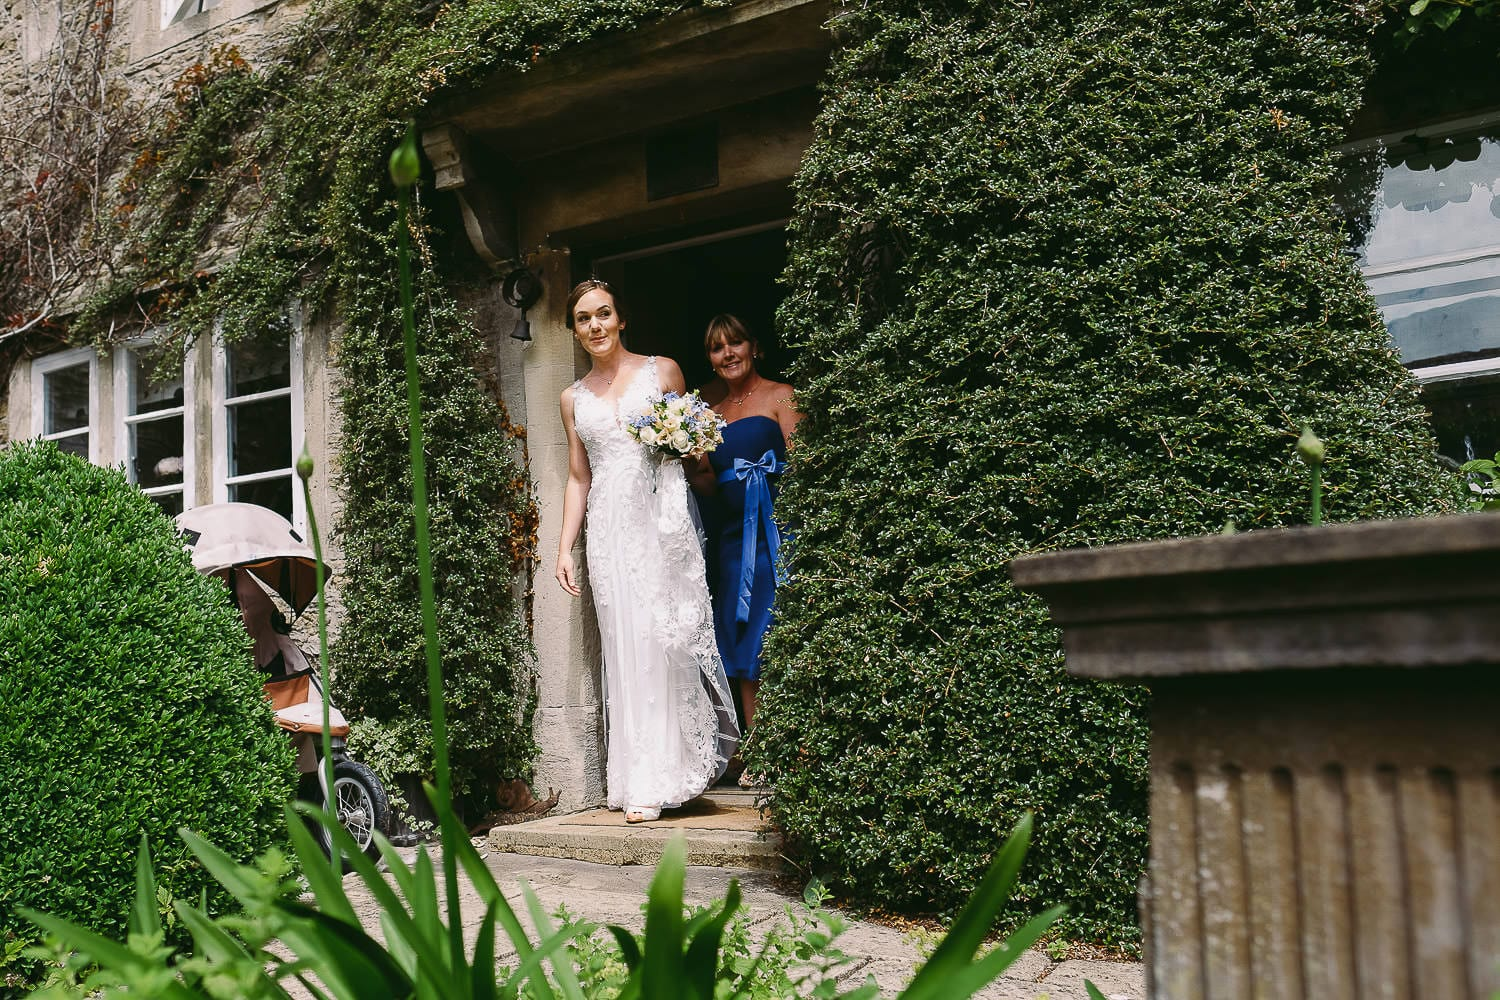 The bride peeks out from the front door